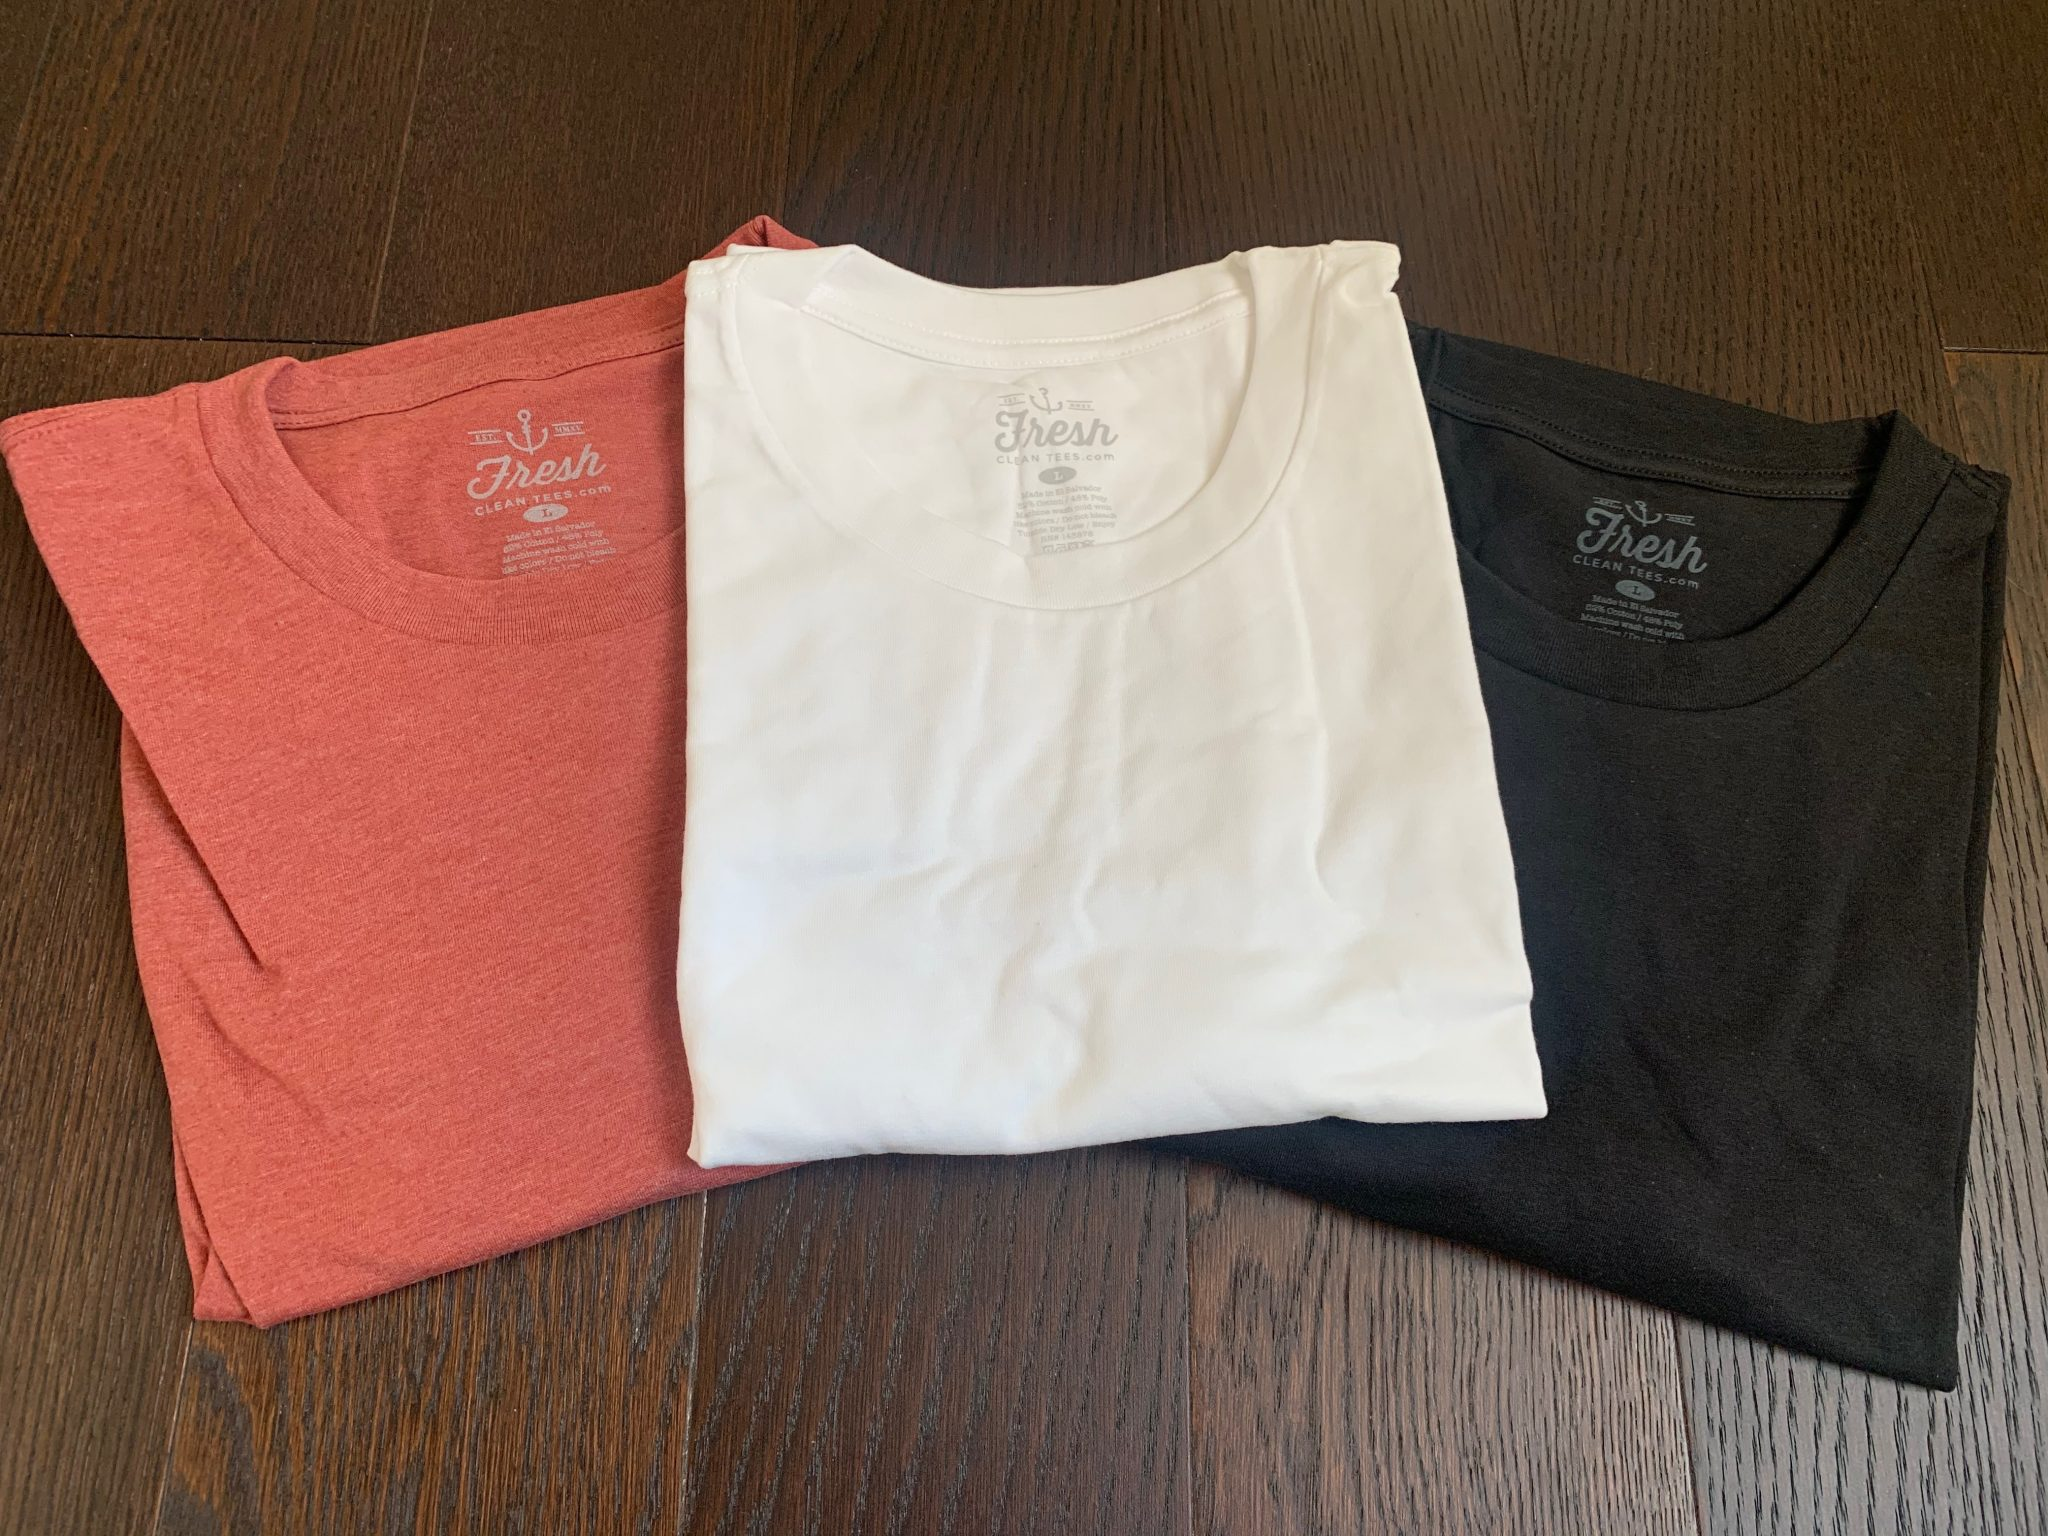 Fresh Clean Tees Shirt Club Review – March 2020